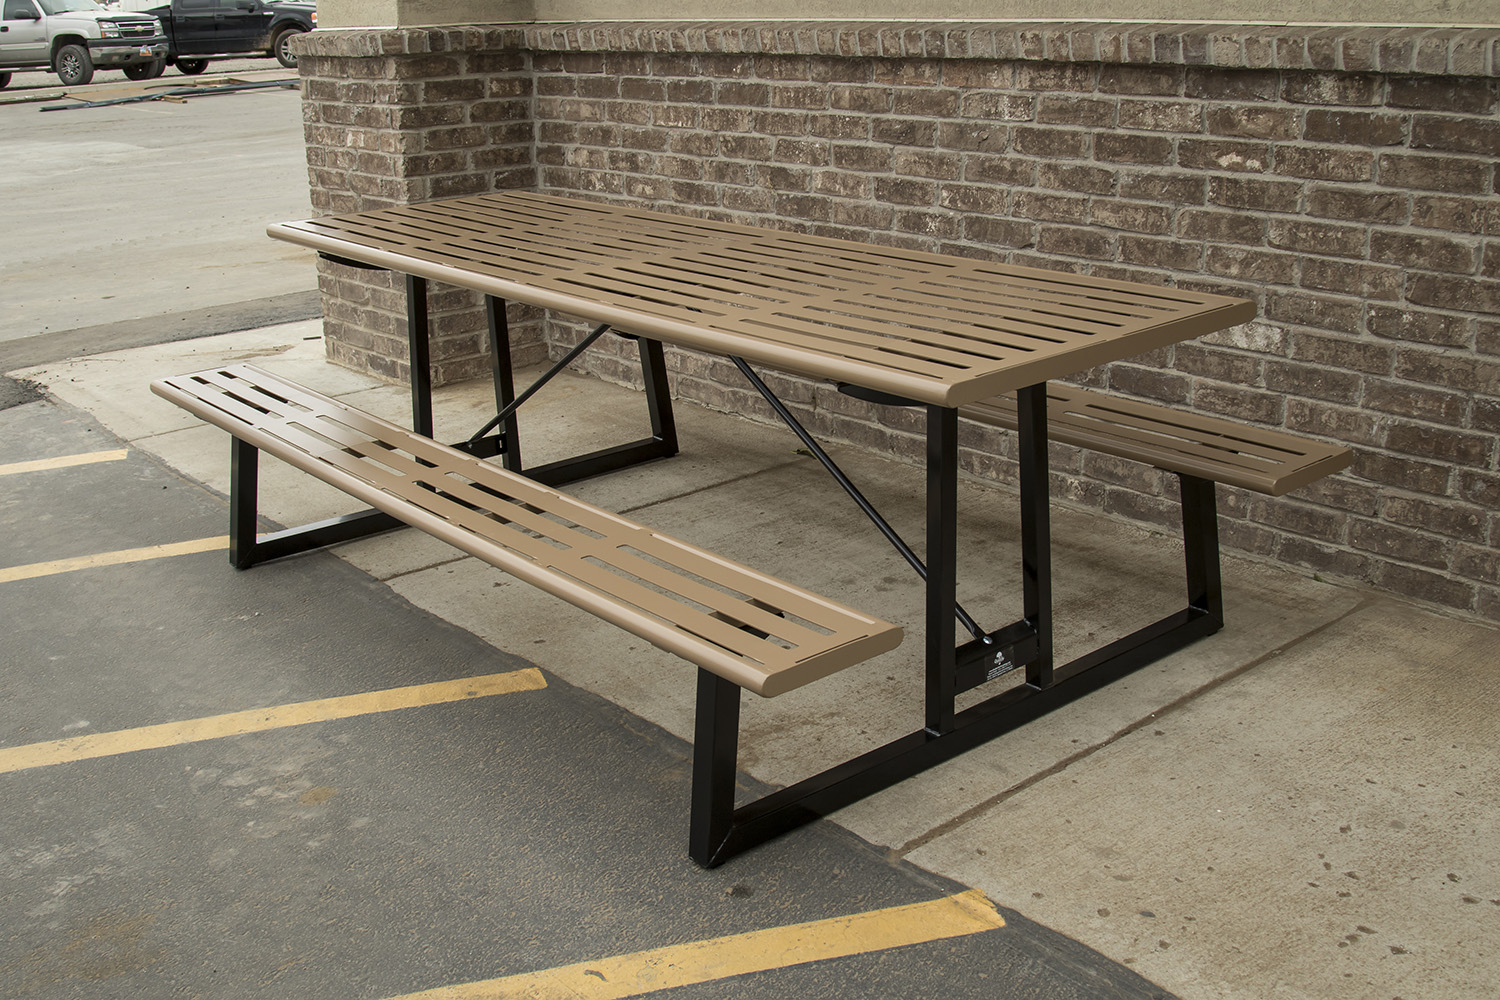 tan commercial picnic table utah - Commercial Picnic Tables